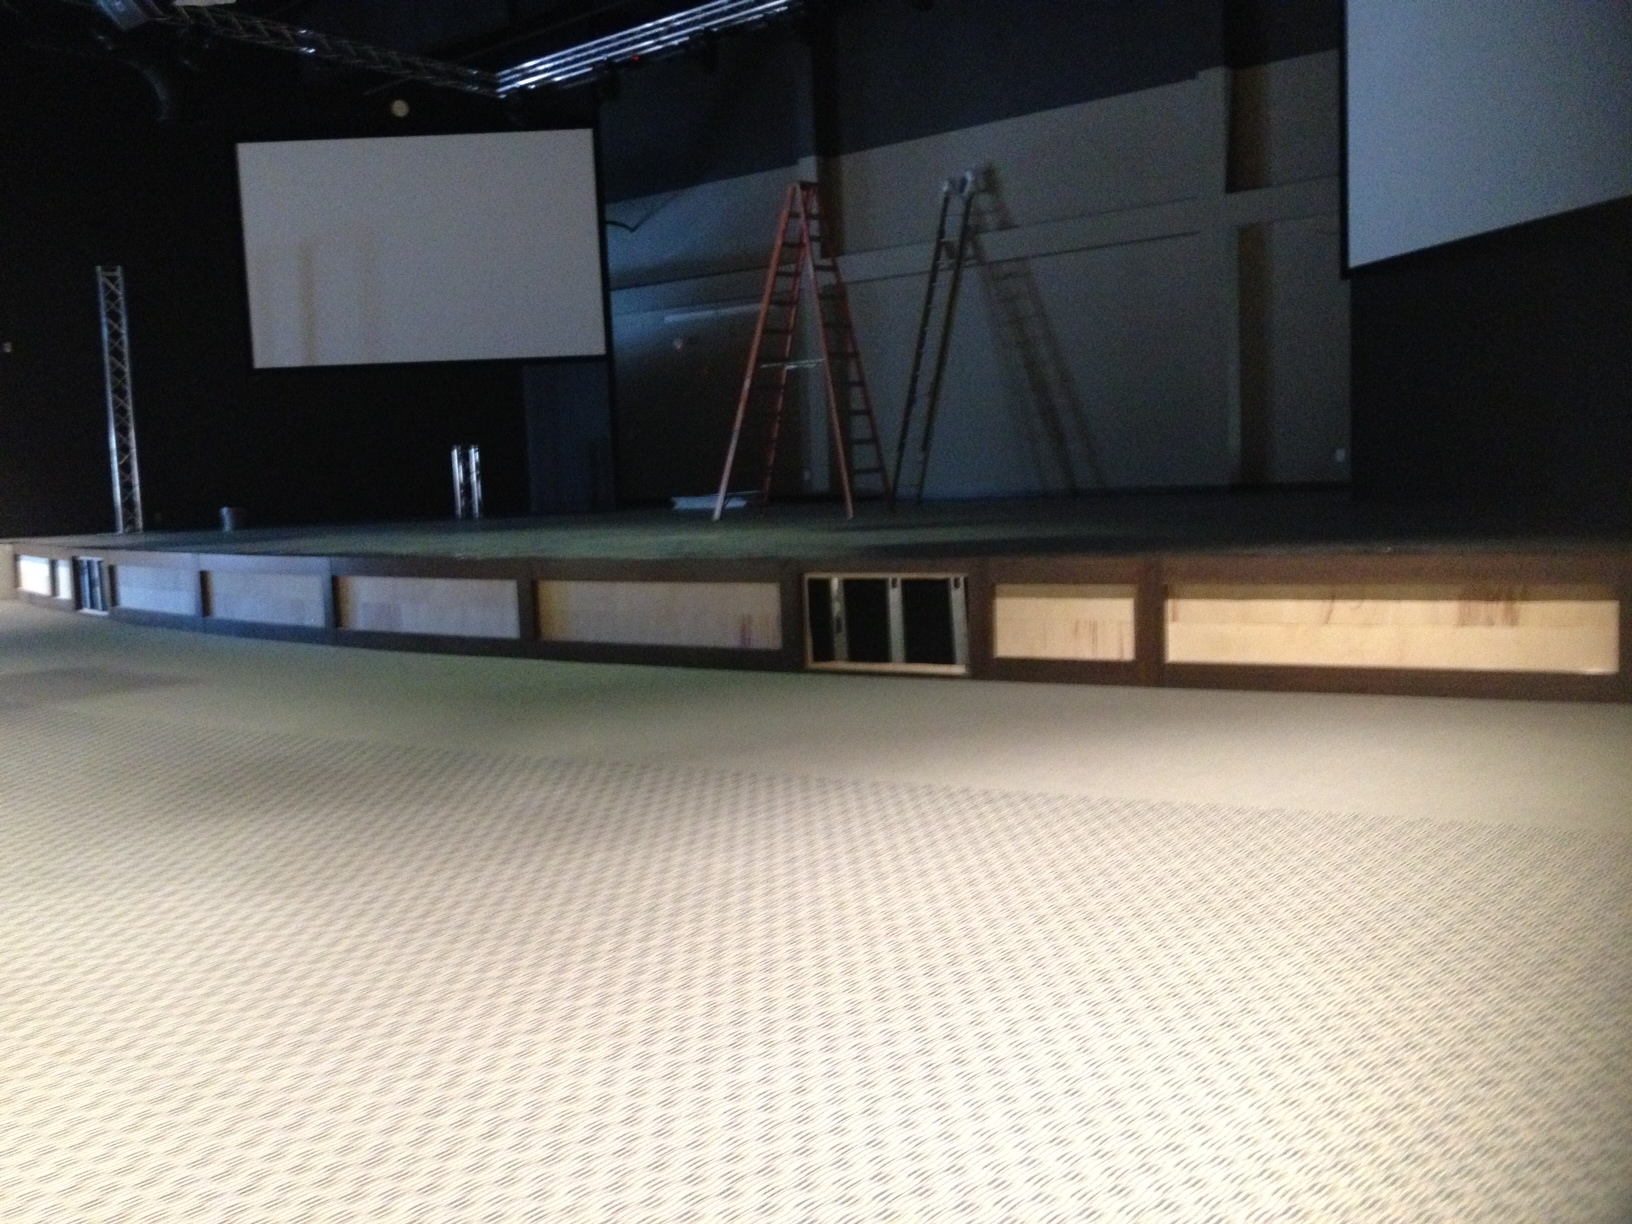 The worship center stage coming along nicely. There will be stacked ledge stone on the face of it soon.